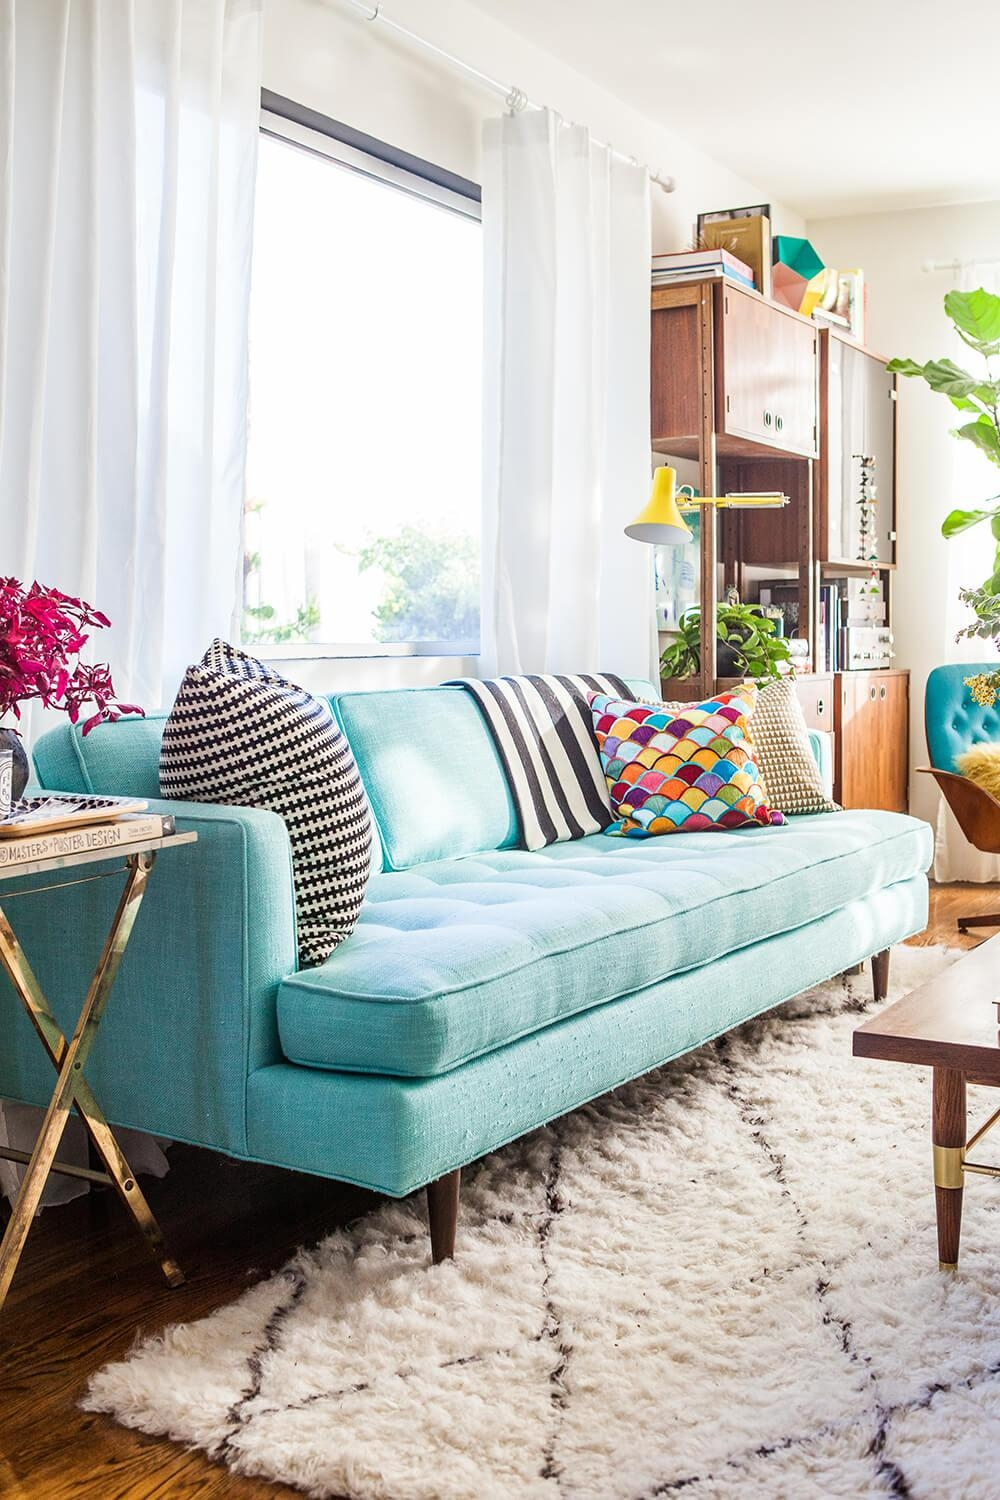 84 Affordable Amazing Sofas Under $1000 - Emily Henderson pertaining to Emily Sofas